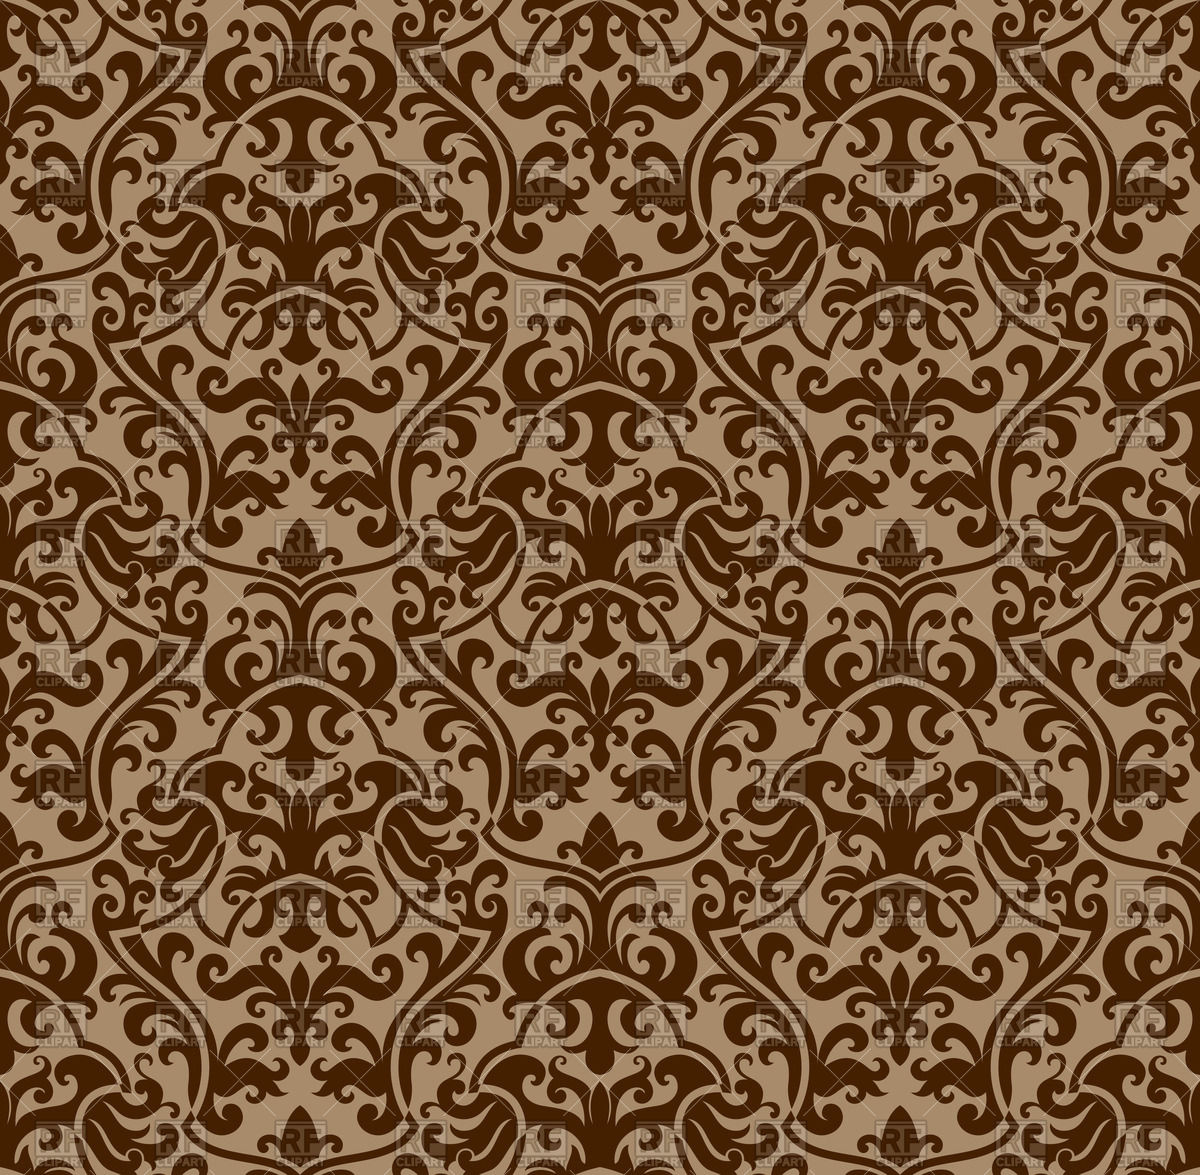 Seamless brown damask background Vector Image #65570.